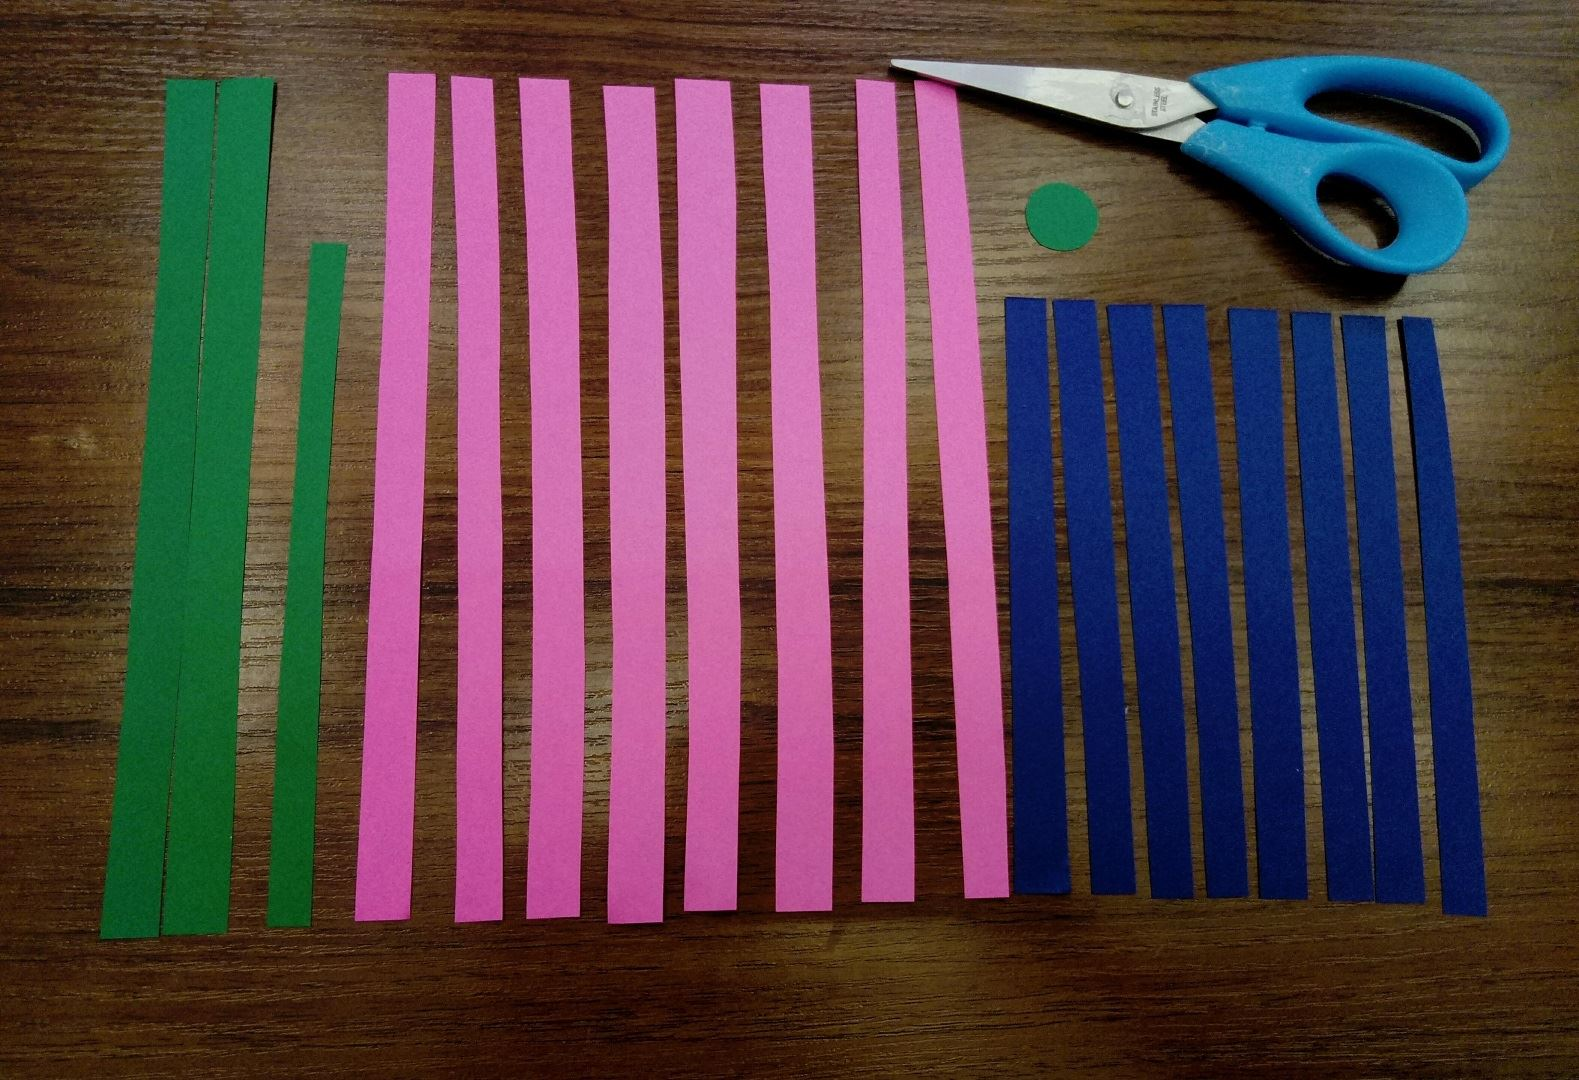 Let's begin from a very simple task, doing a lot of strips. Cut pink paper along into 8 identical strips. Cut horizontally 8 stripes out of the blue paper. Now take the green paper and cut out 2 long strips and one a bit shorter and a small circle. When everything is done, we can continue!